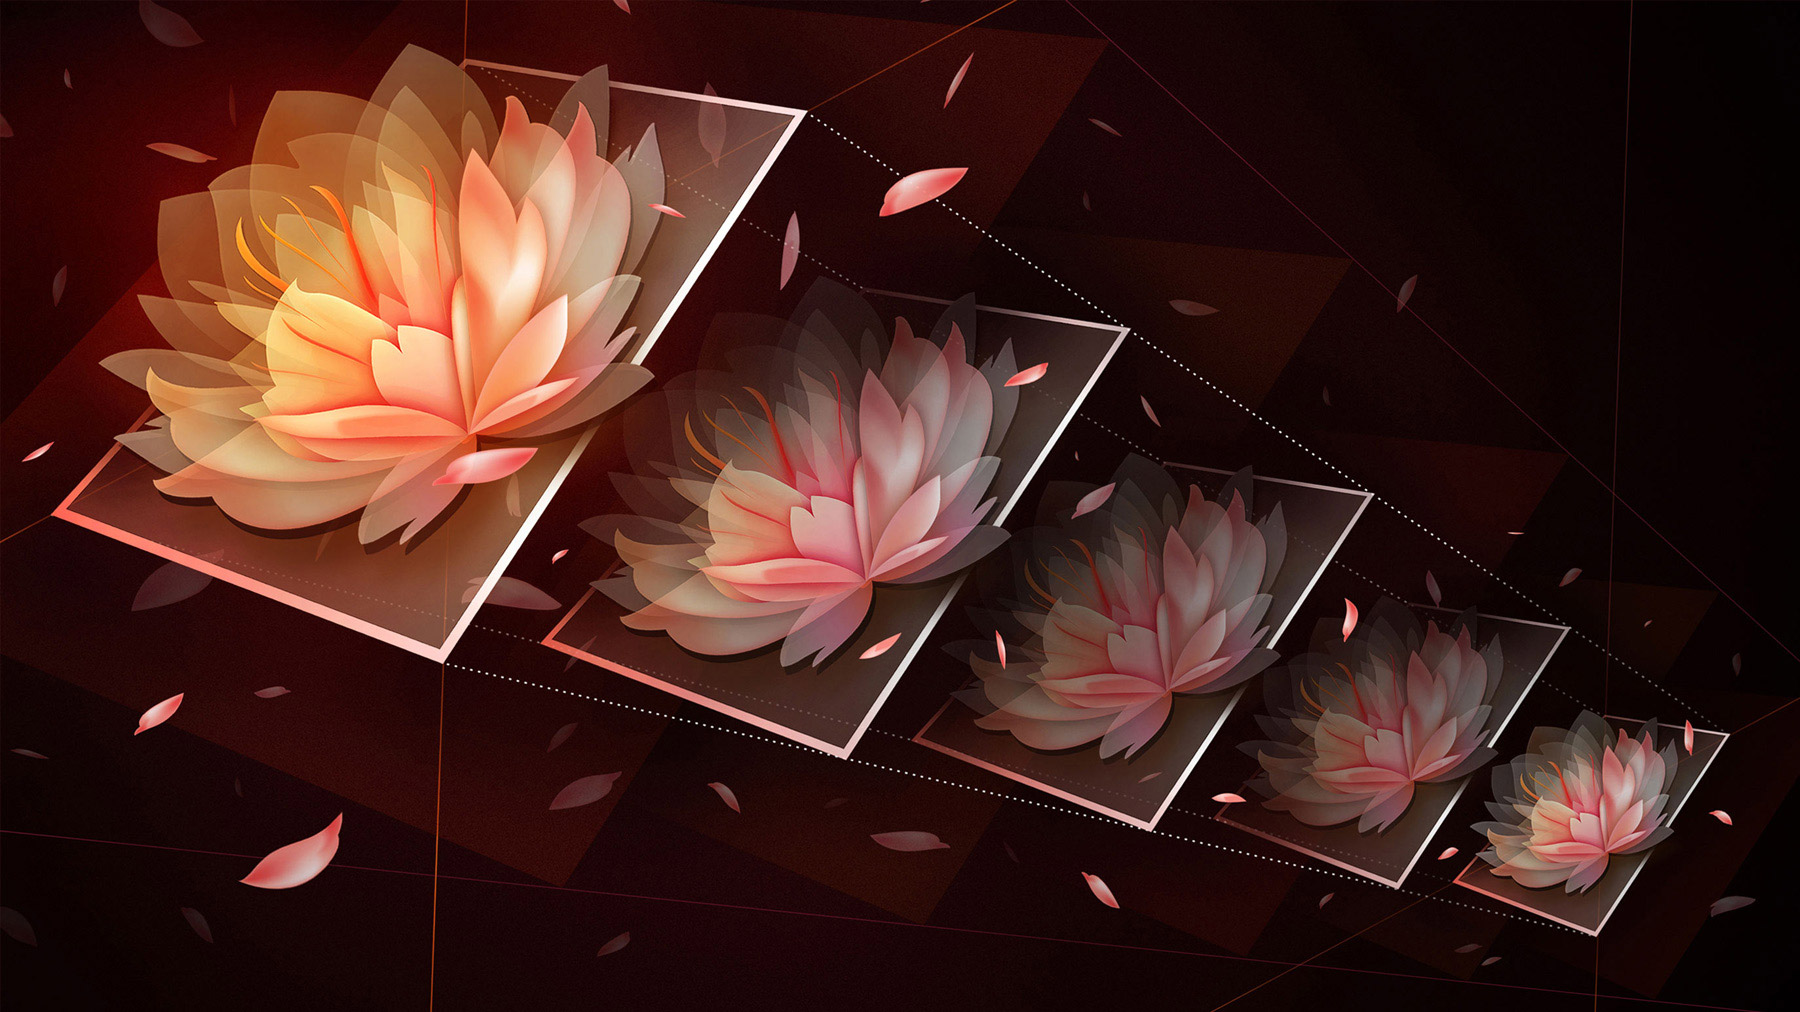 Pngs get squished in indesign graphic library stock Resize content in a frame in InDesign | Adobe InDesign tutorials graphic library stock